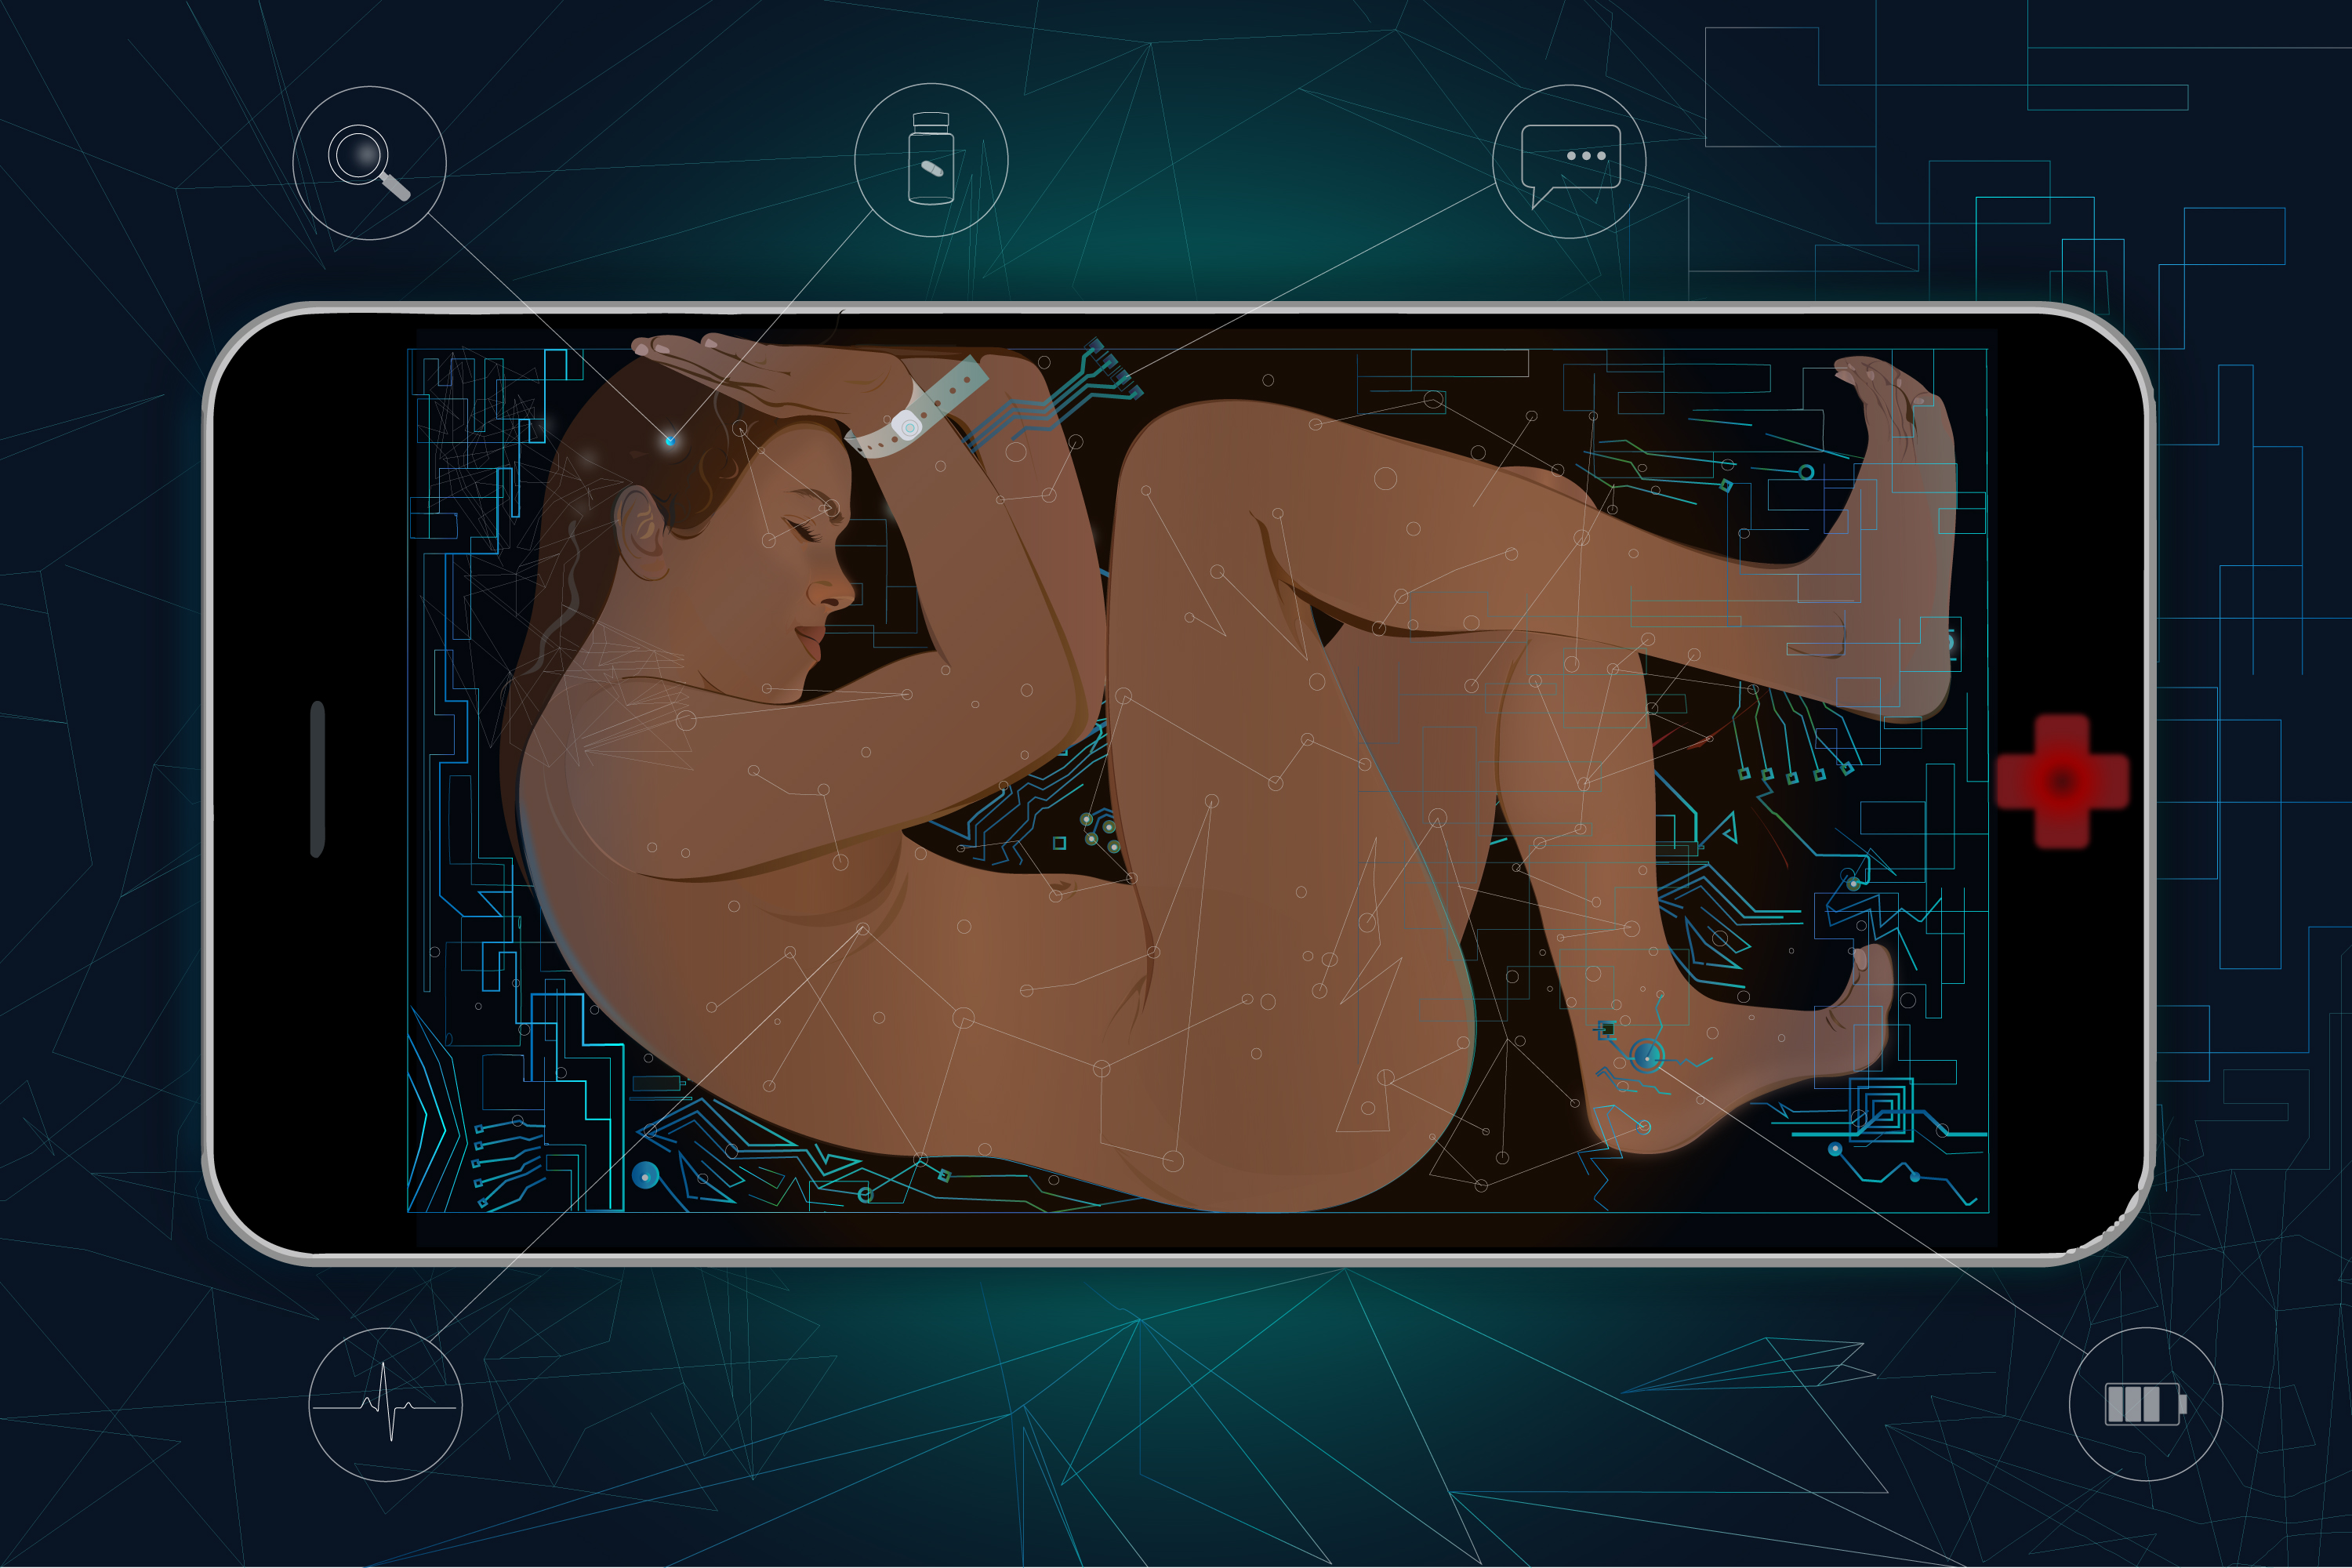 An illustration of a person trapped framed by a cell phone.